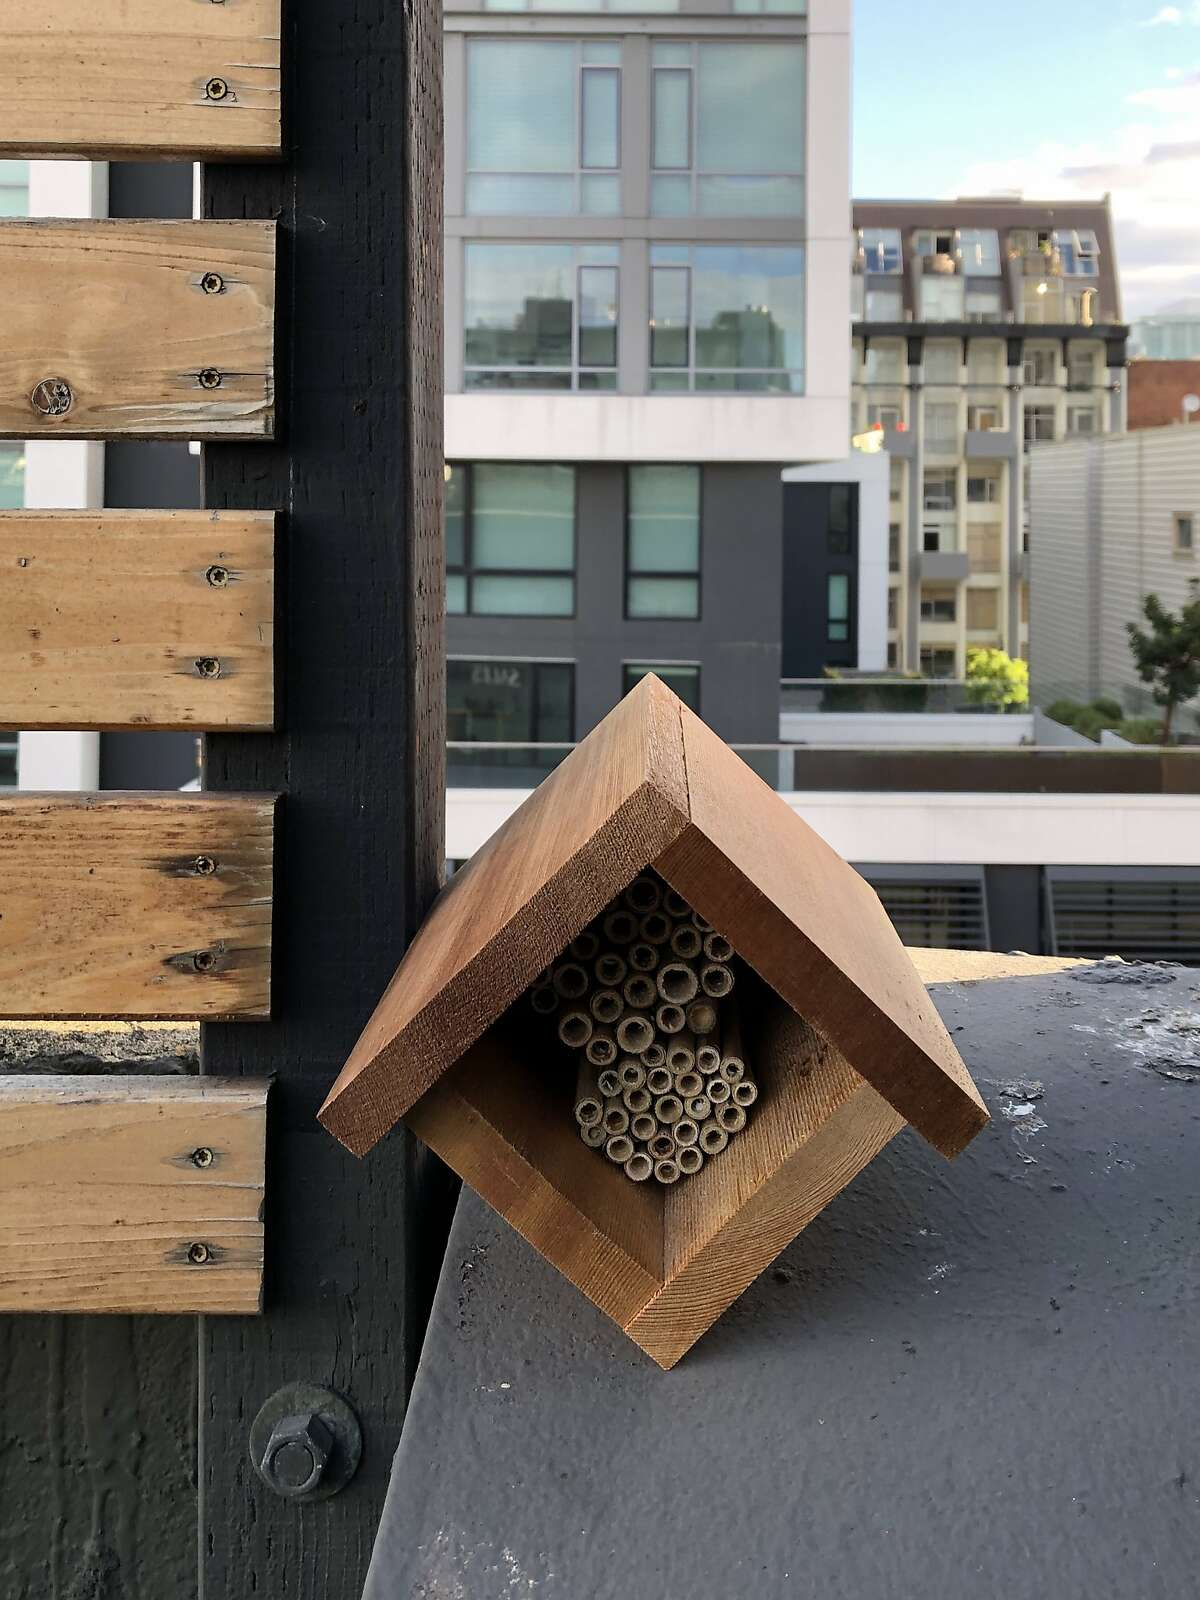 Bee house for Mason bees that San Francisco beekeeper Bianca Dawydiak hopes to install in the Bay Area for her stingless bees.